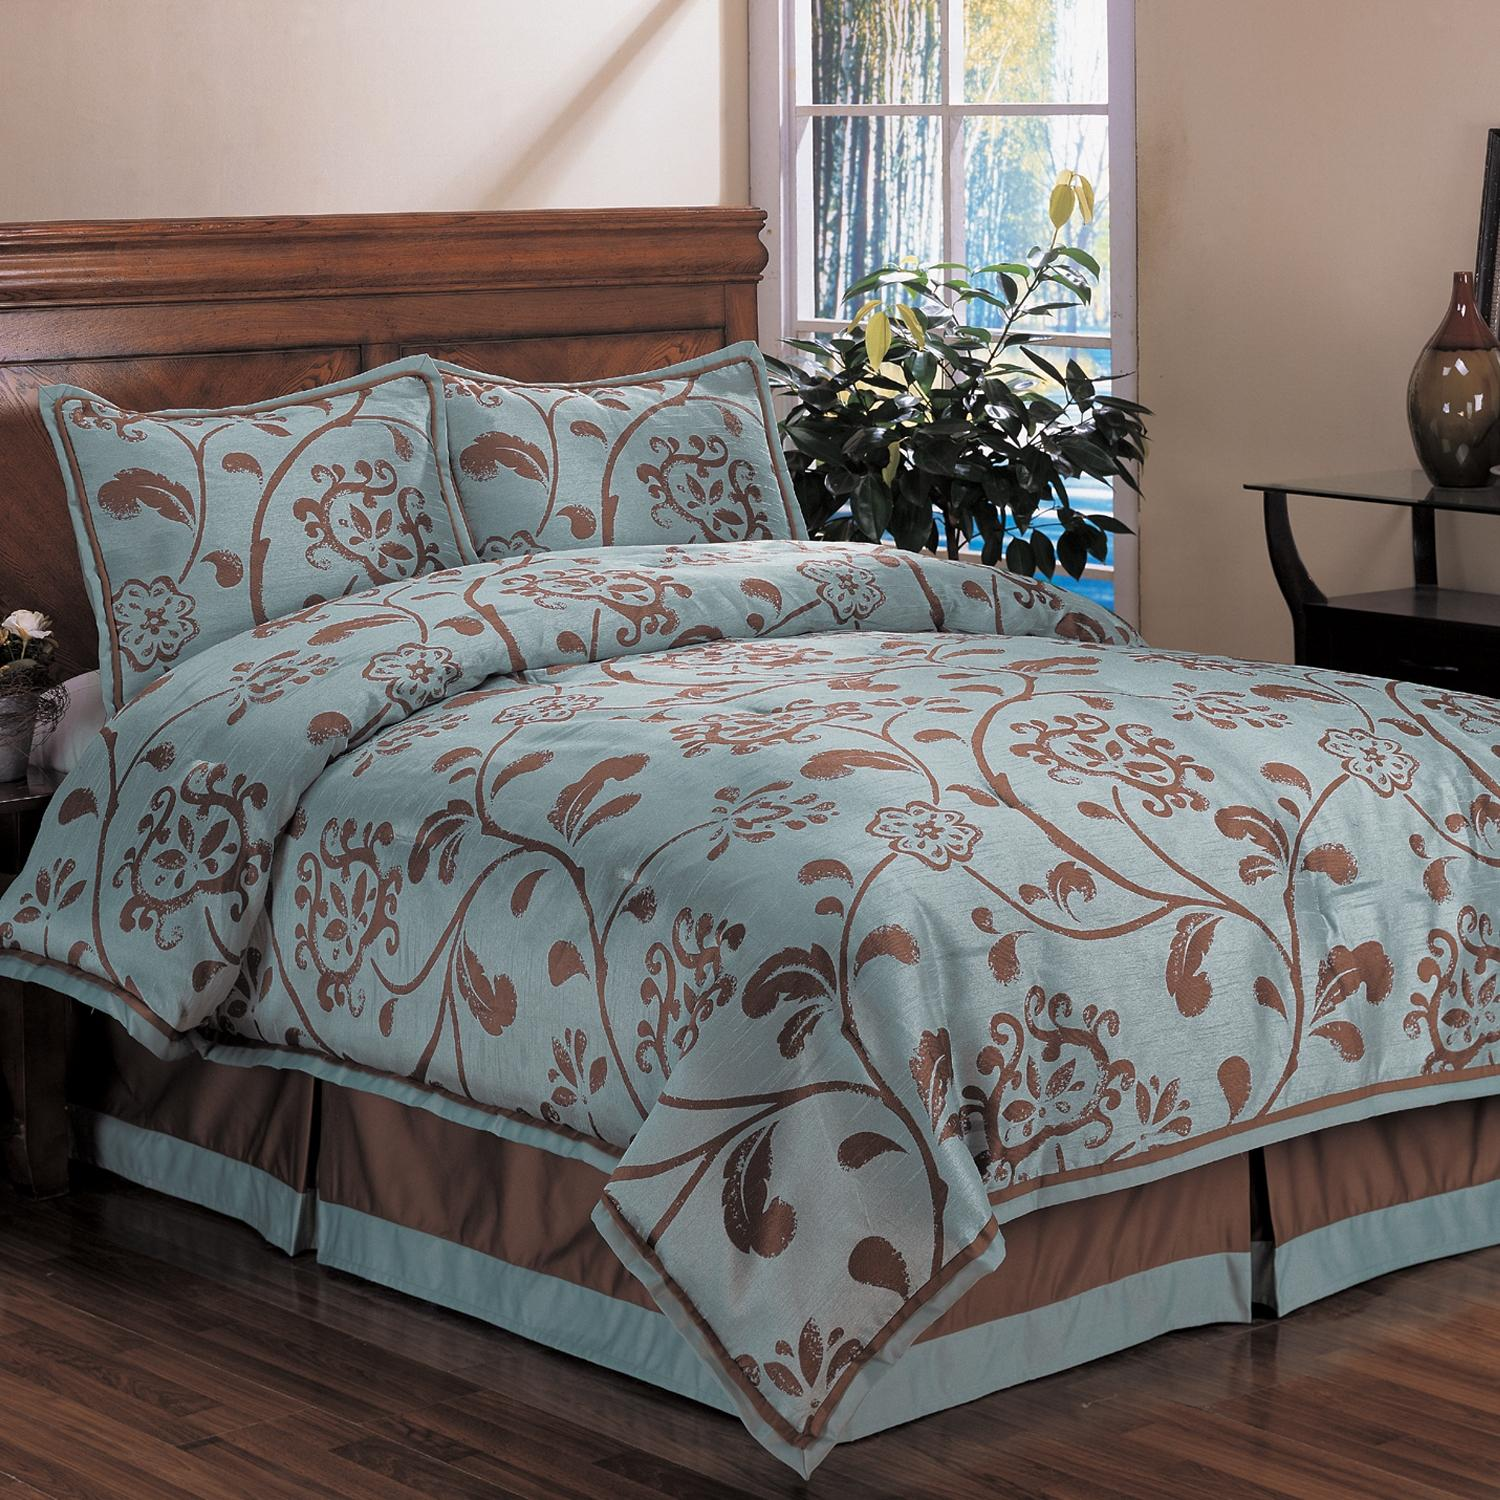 Cozy queen size comforter sets for bedroom design with cheap queen size comforter sets